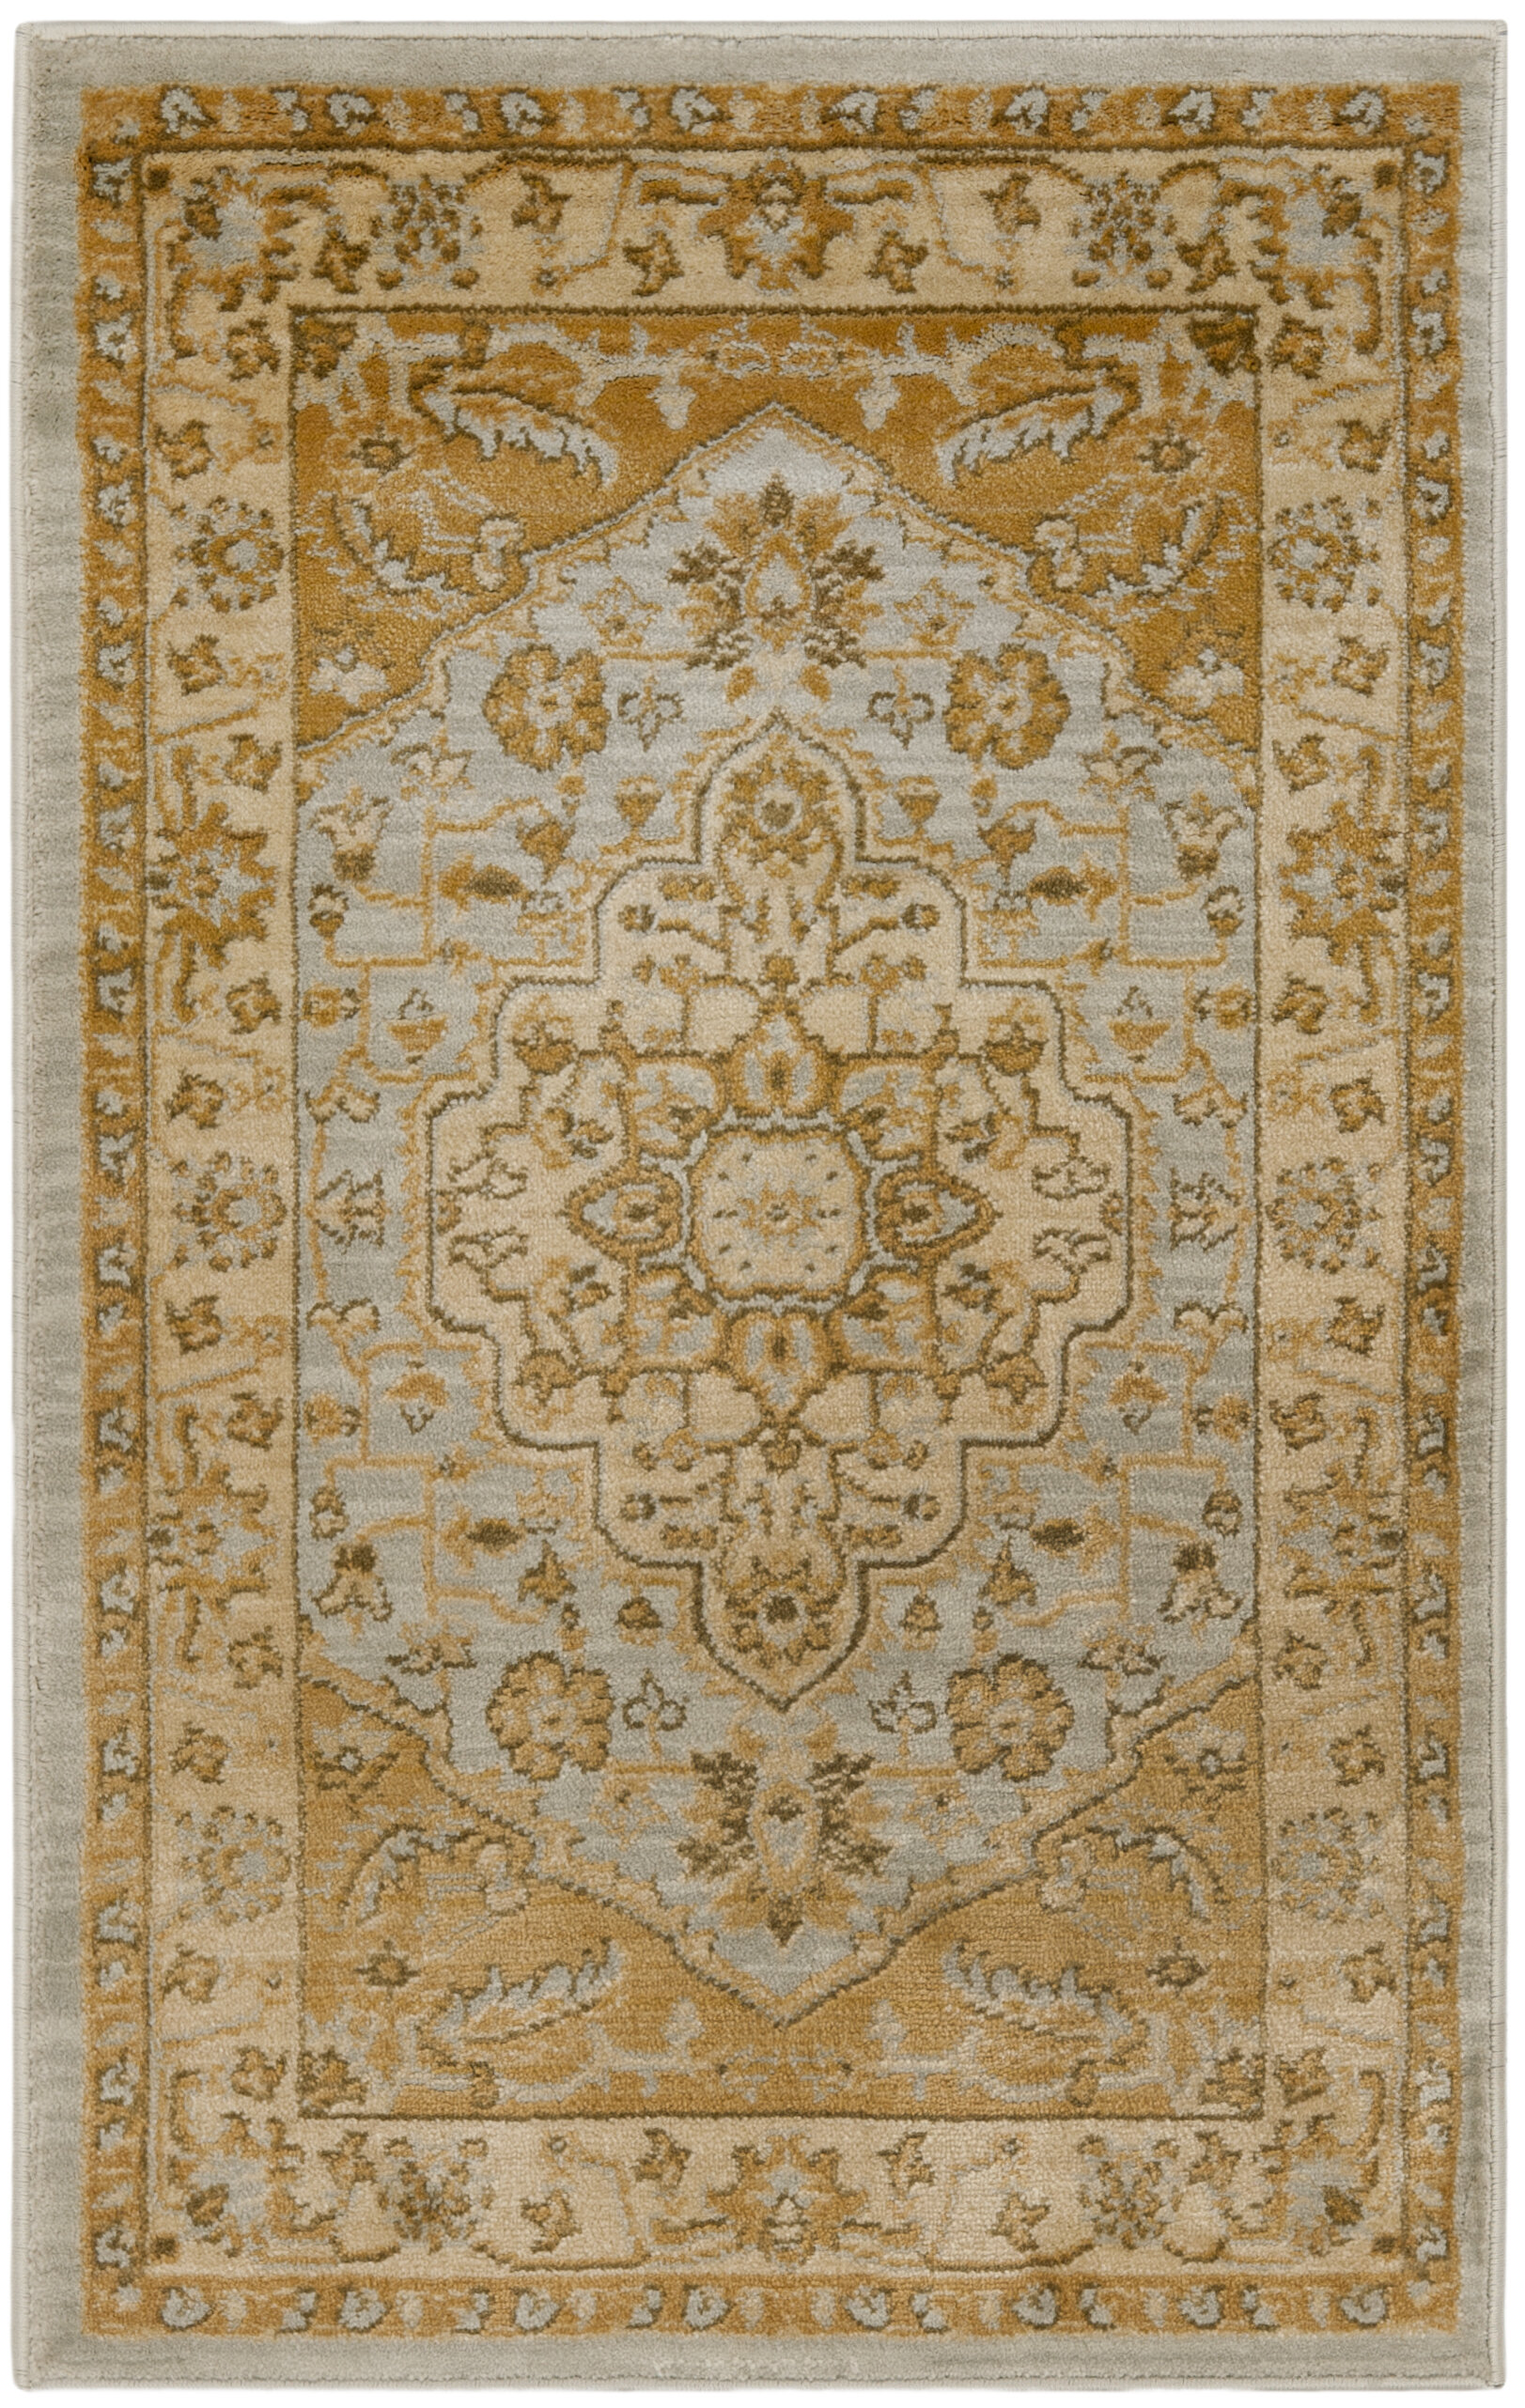 home ivory brown overstock vintage product garden wool safavieh diamond rug shipping today handmade light marbella x free